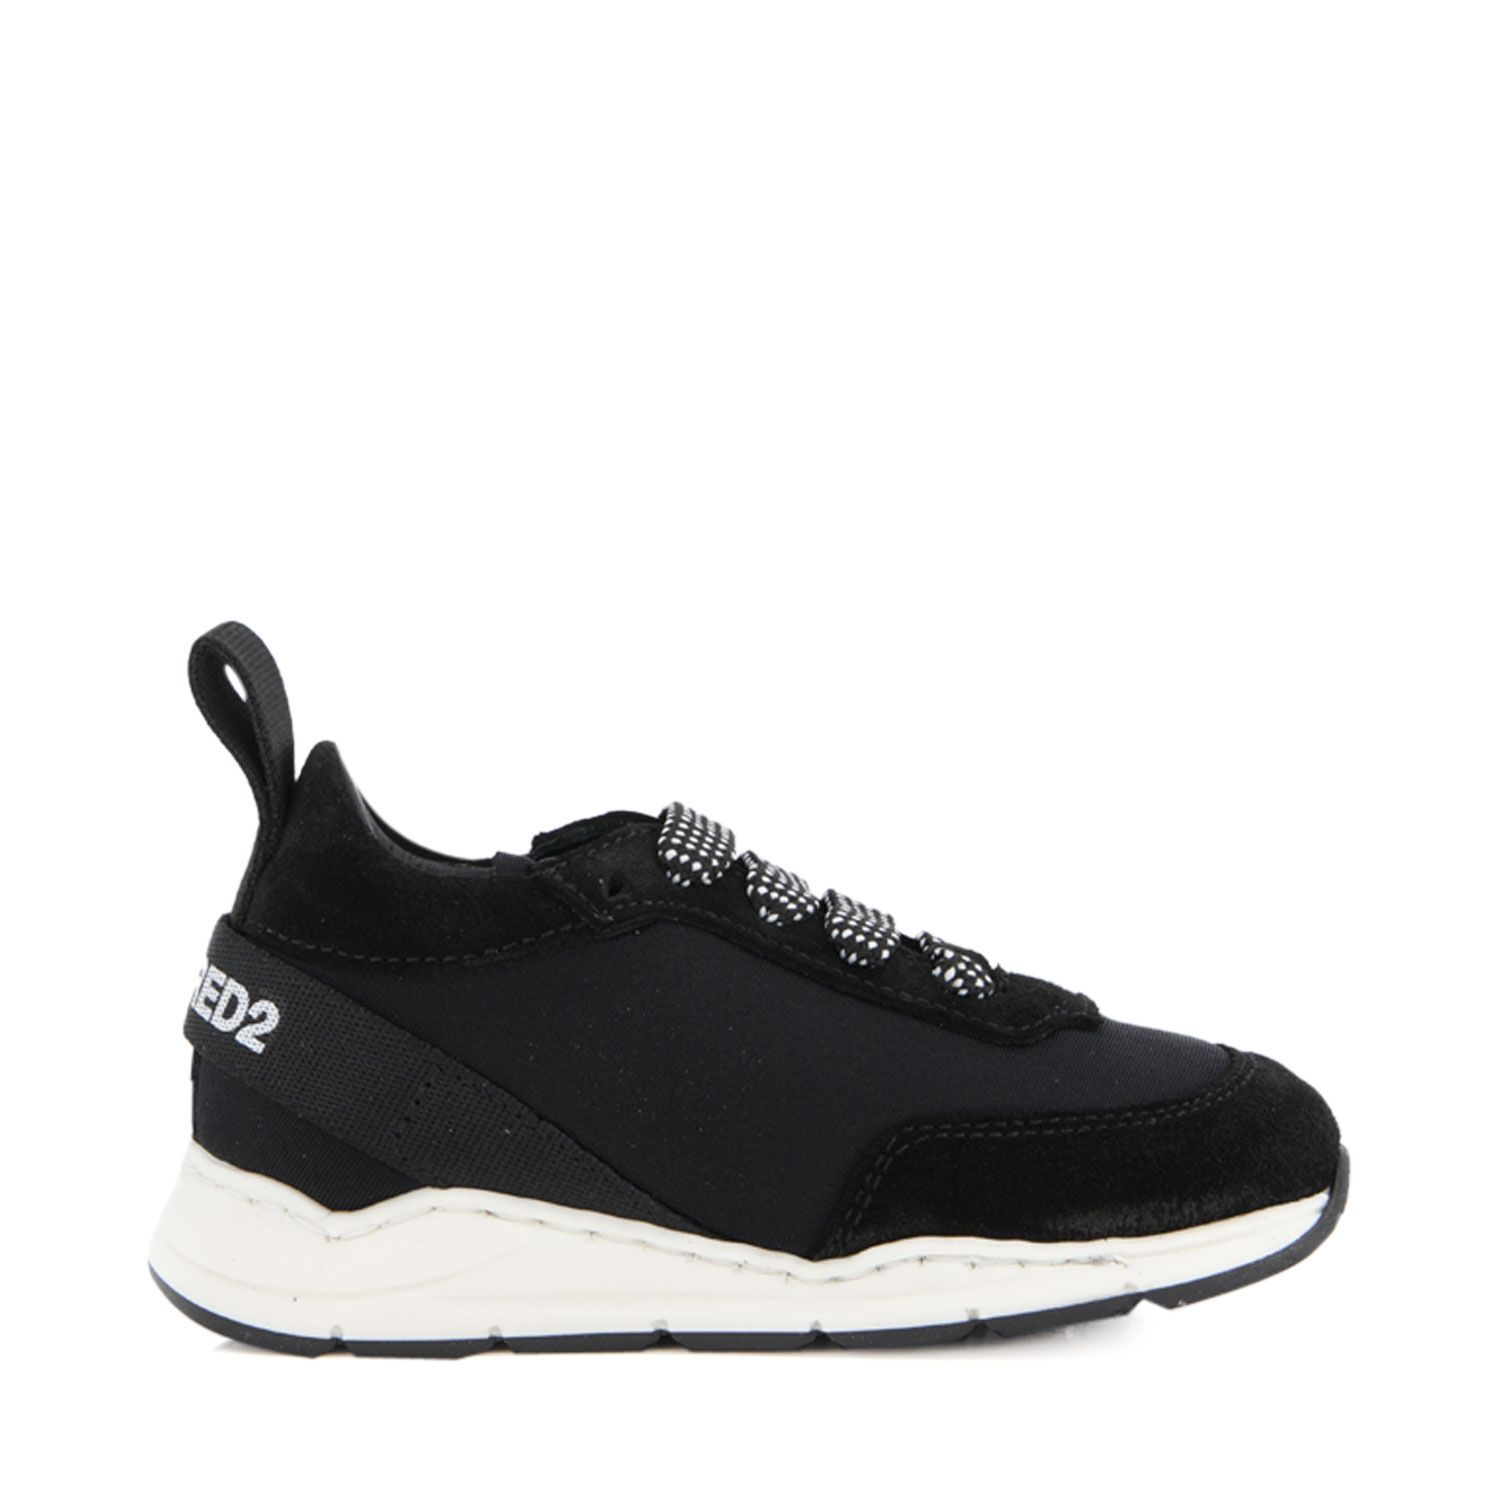 Picture of Dsquared2 65004 kids sneakers black